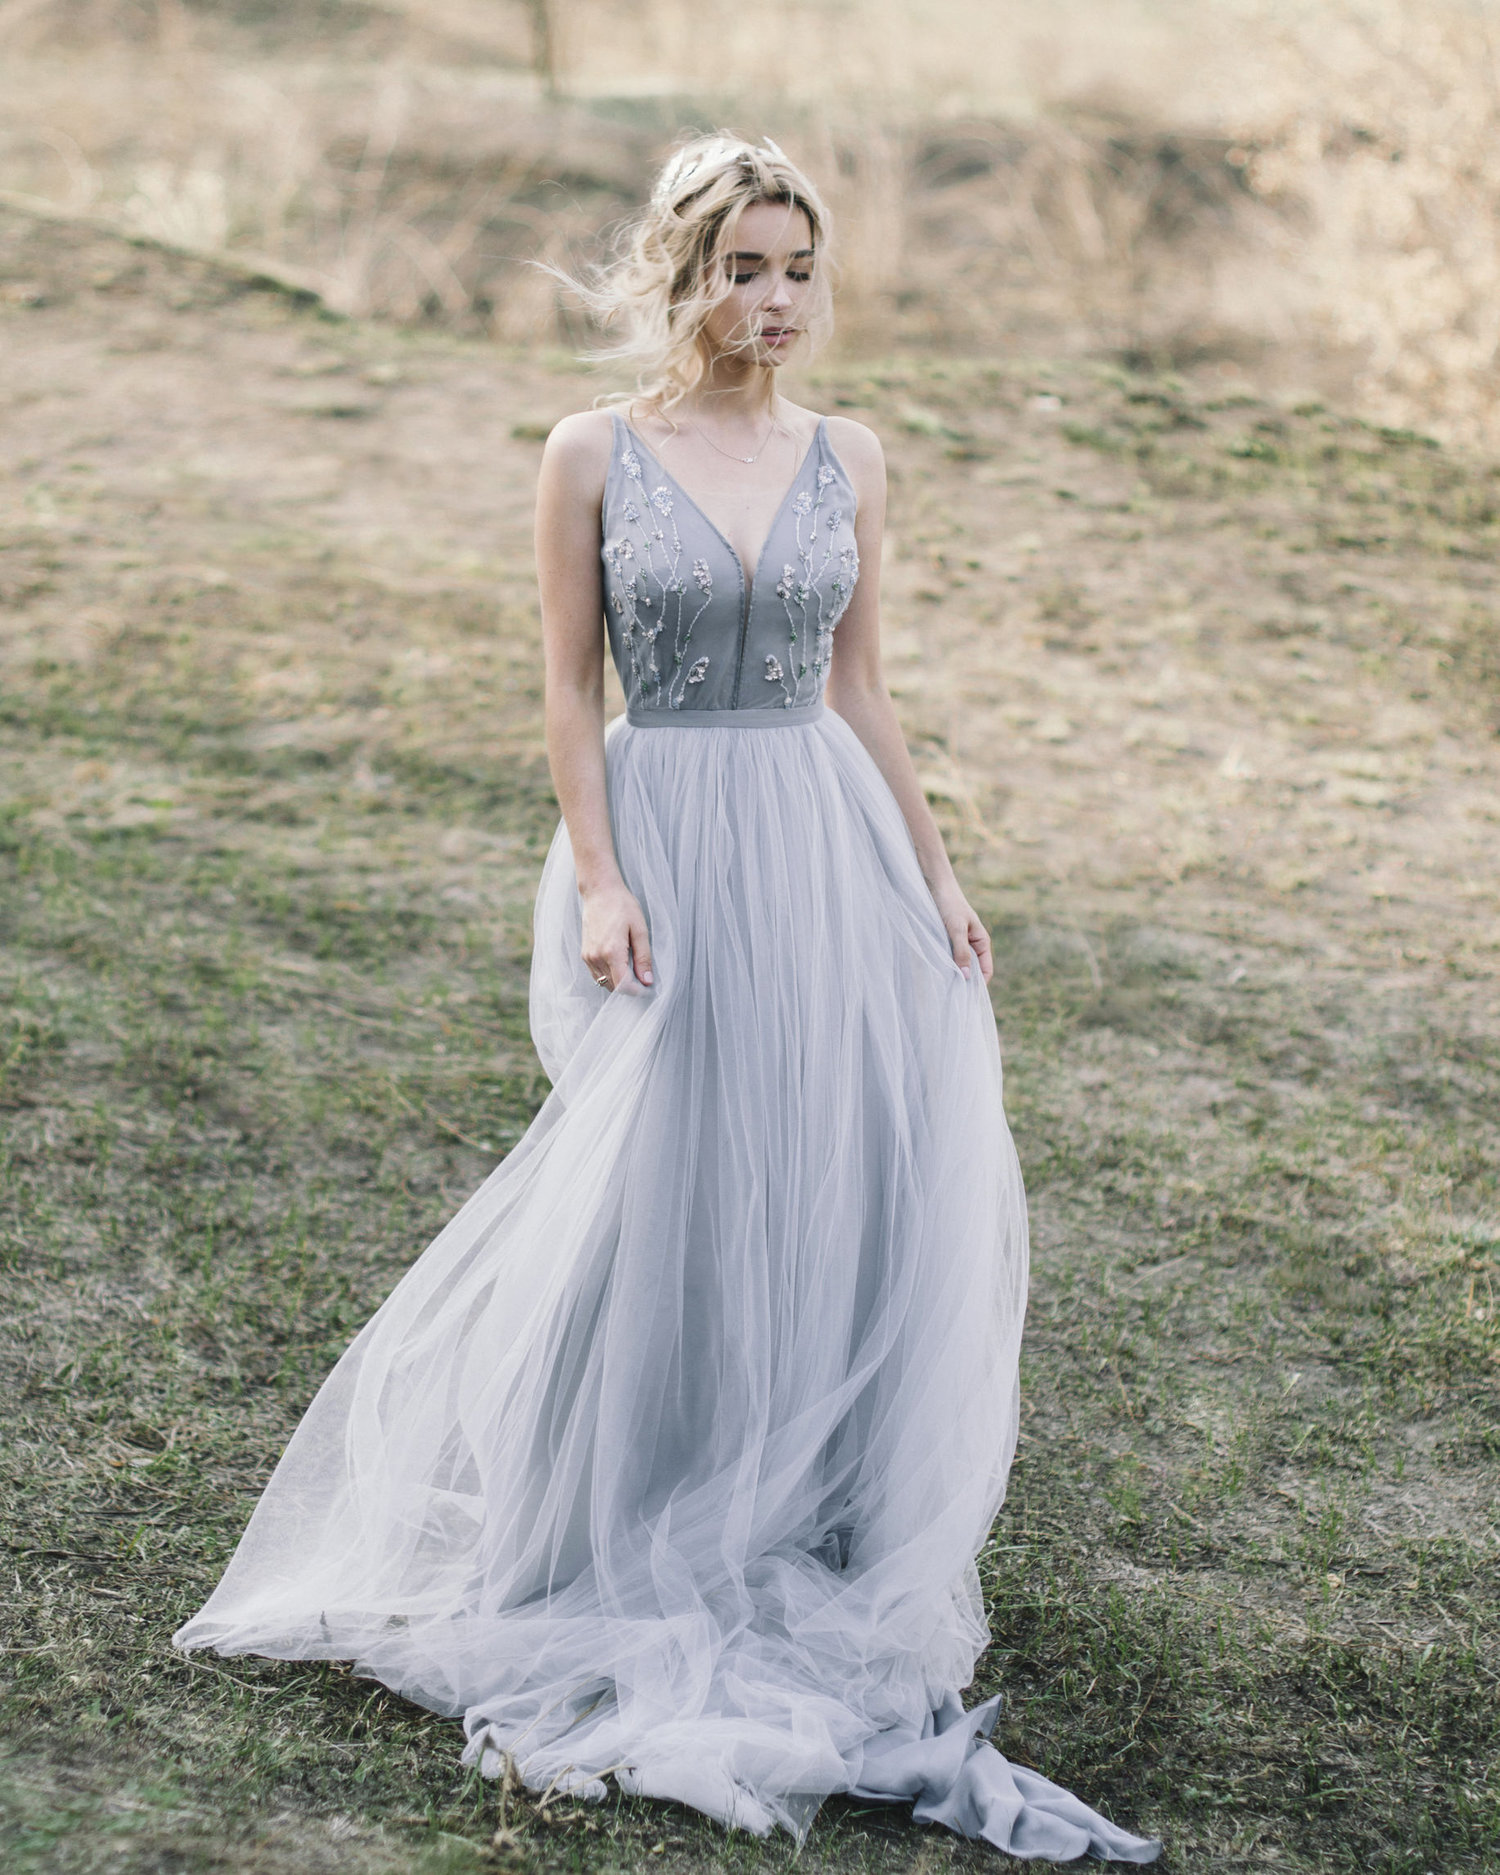 22 Alternative Bridal Gowns For Bold Brides Inspiration And Advice To Plan The Perfect Wedding